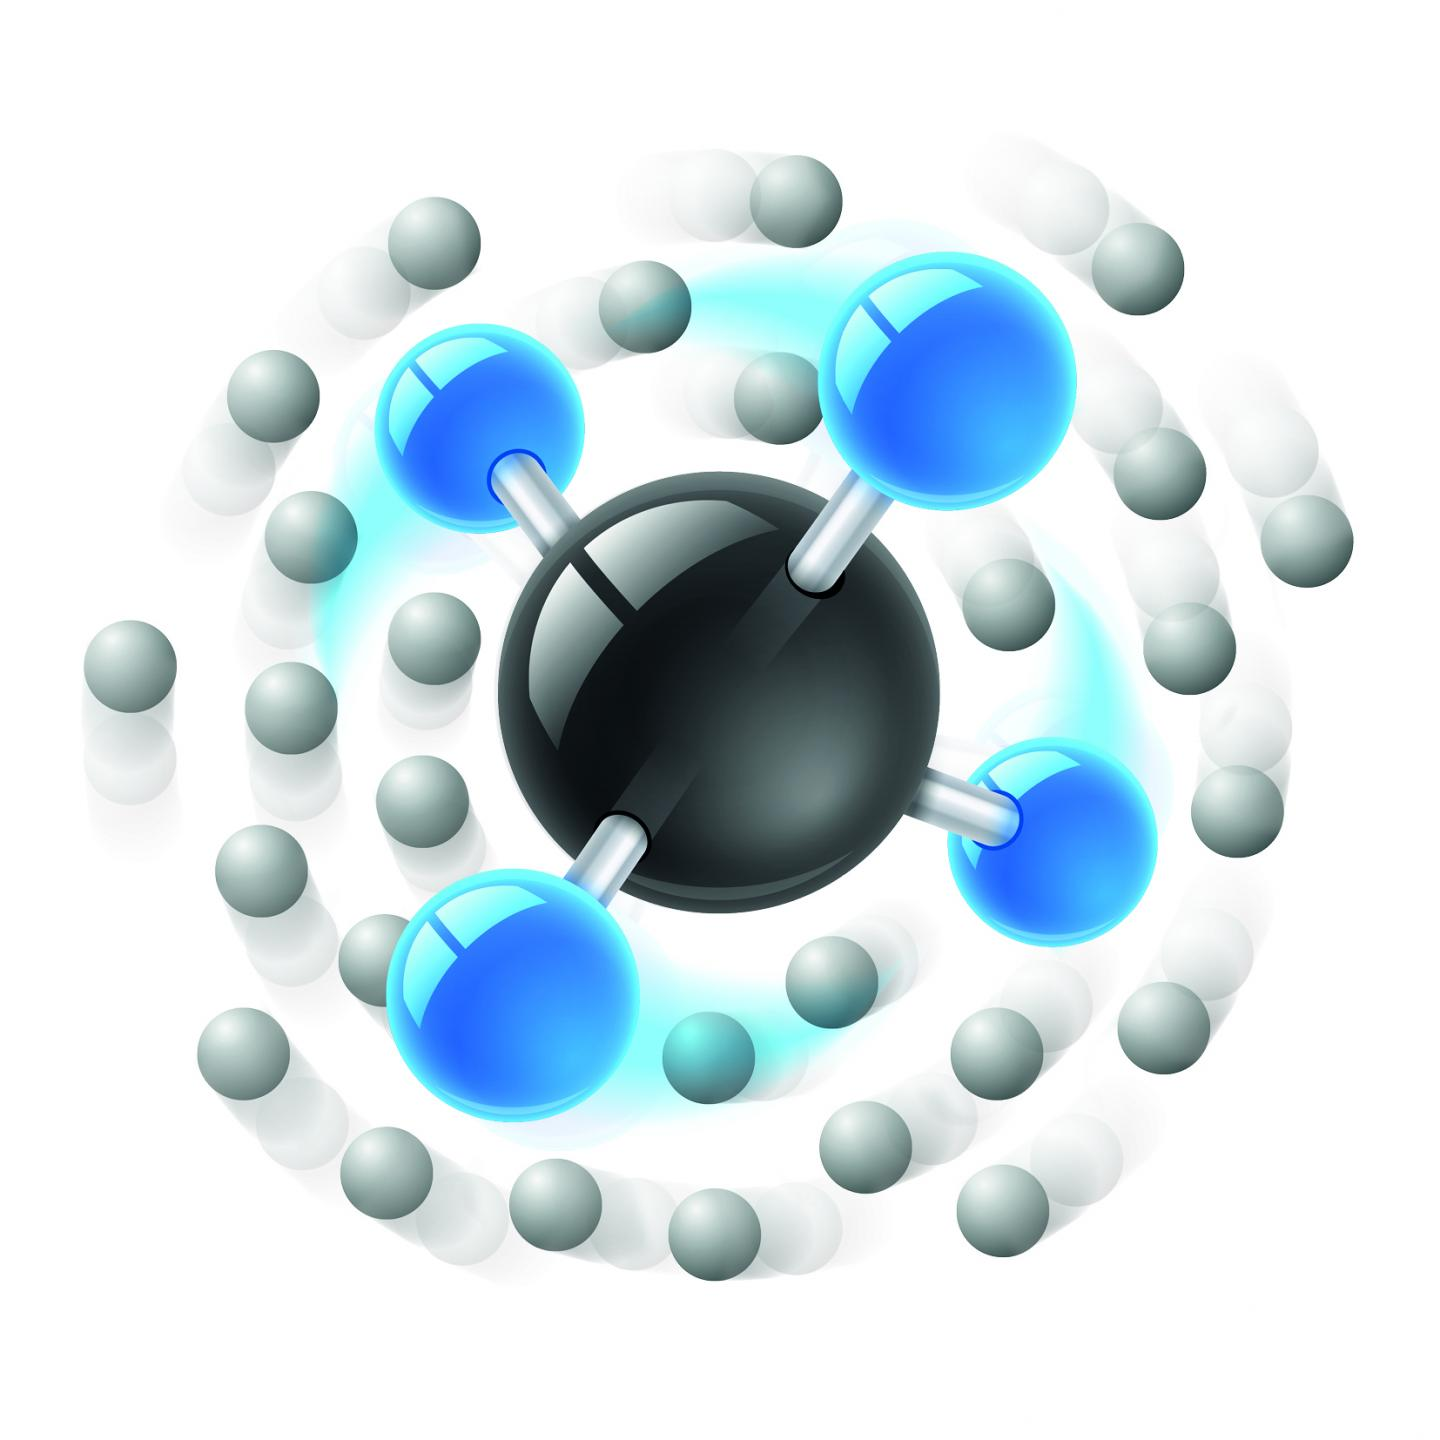 Angulon Quasiparticle Formed from a Methane Molecule in Superfluid Helium